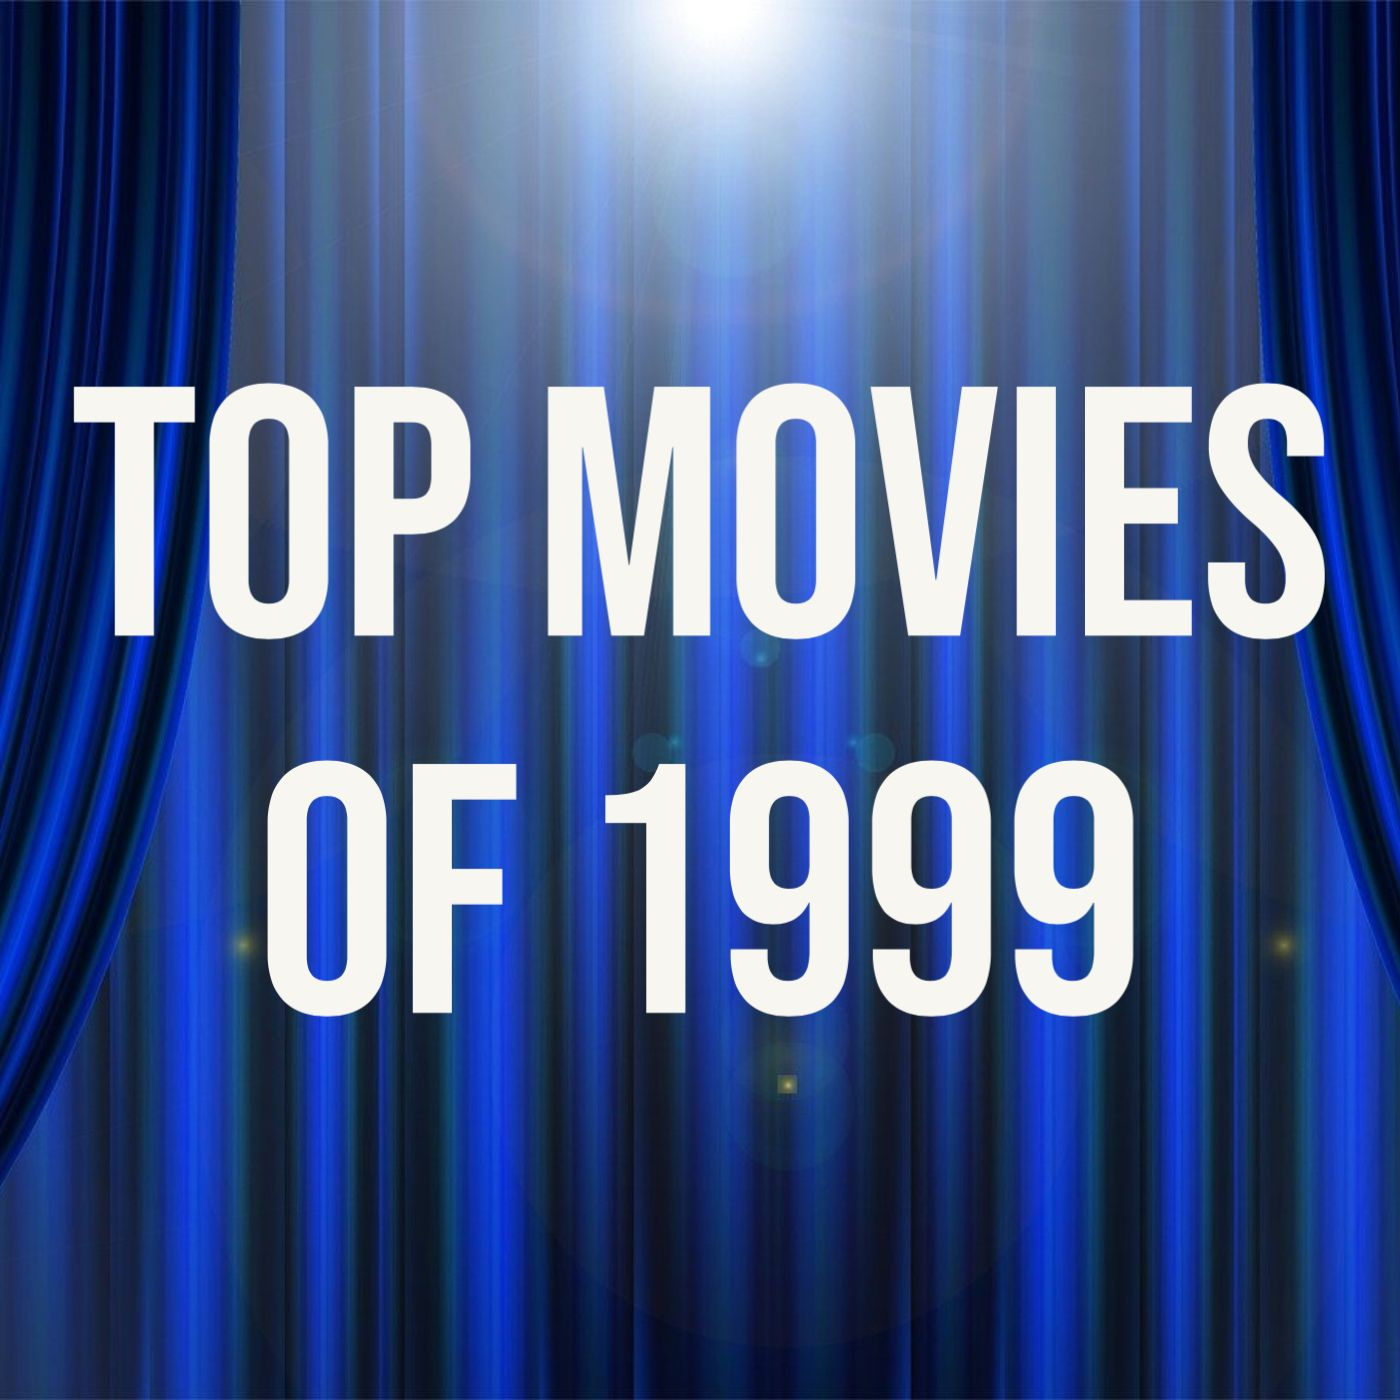 Top Movies of 1999